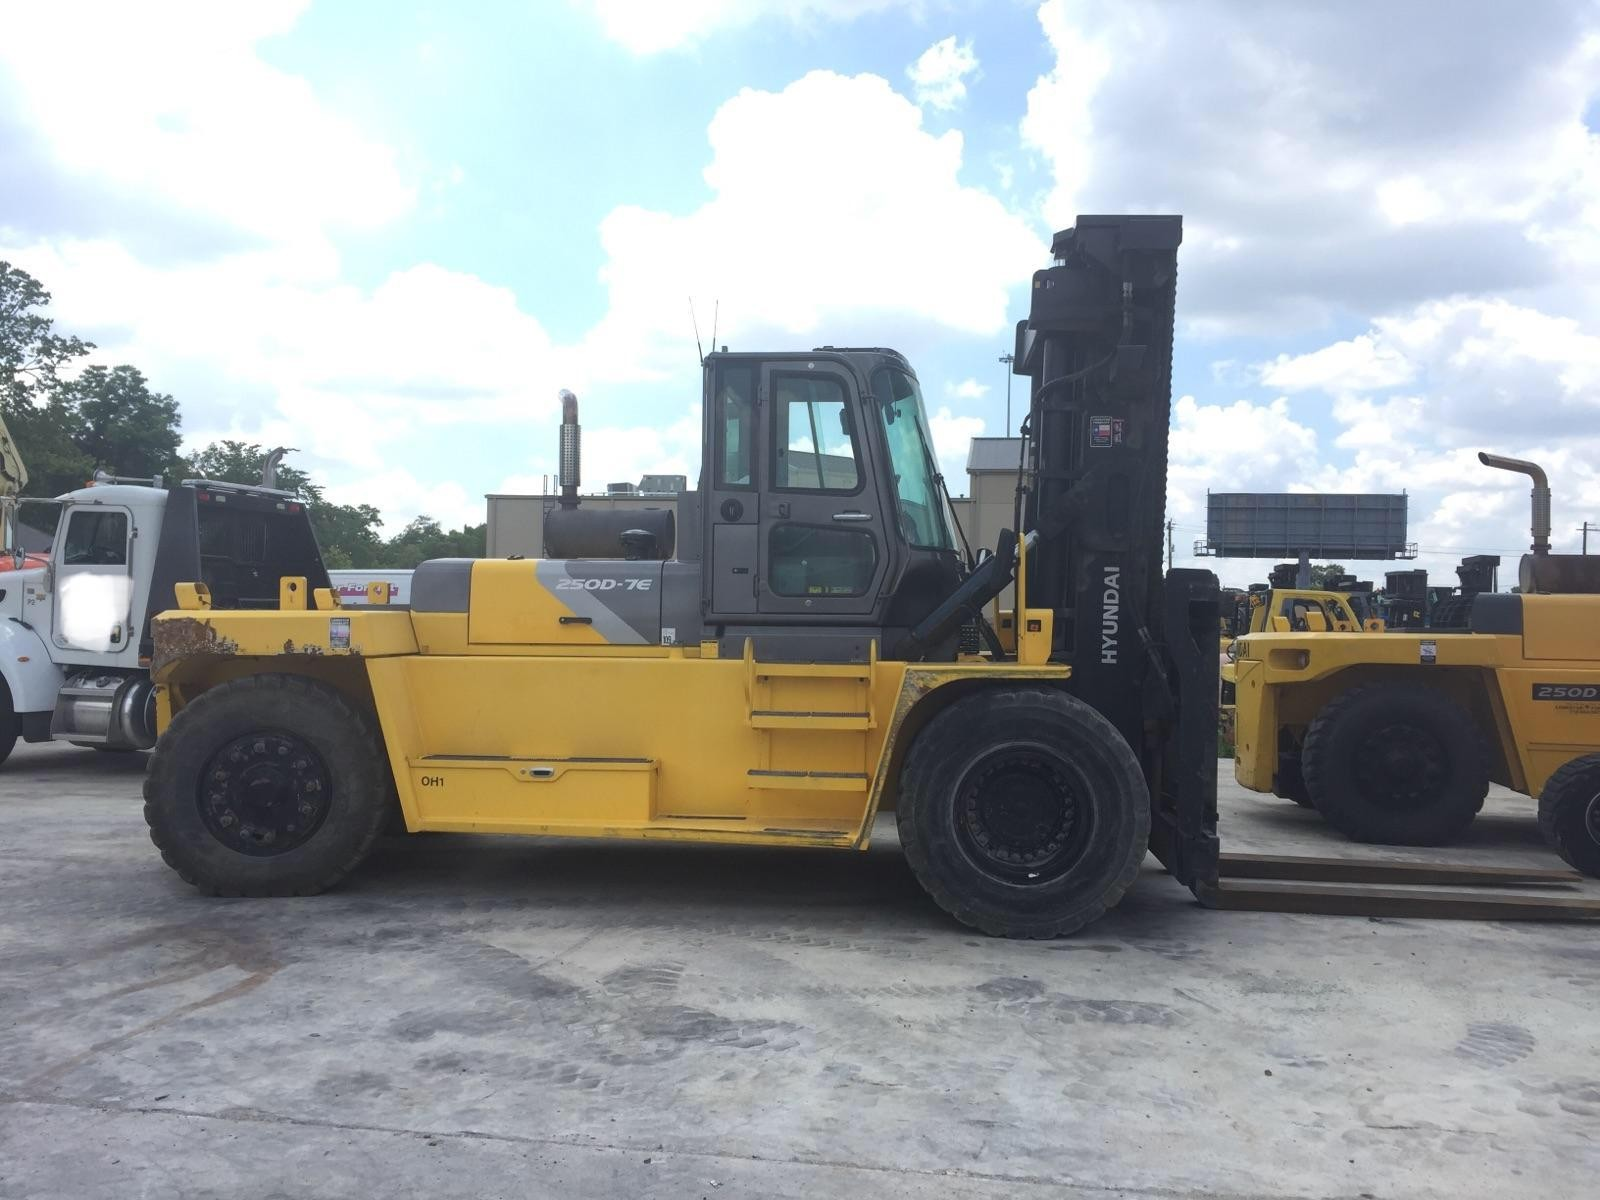 Large Forklifts, Trucks, Lift Equipment Sales and Rentals: Large